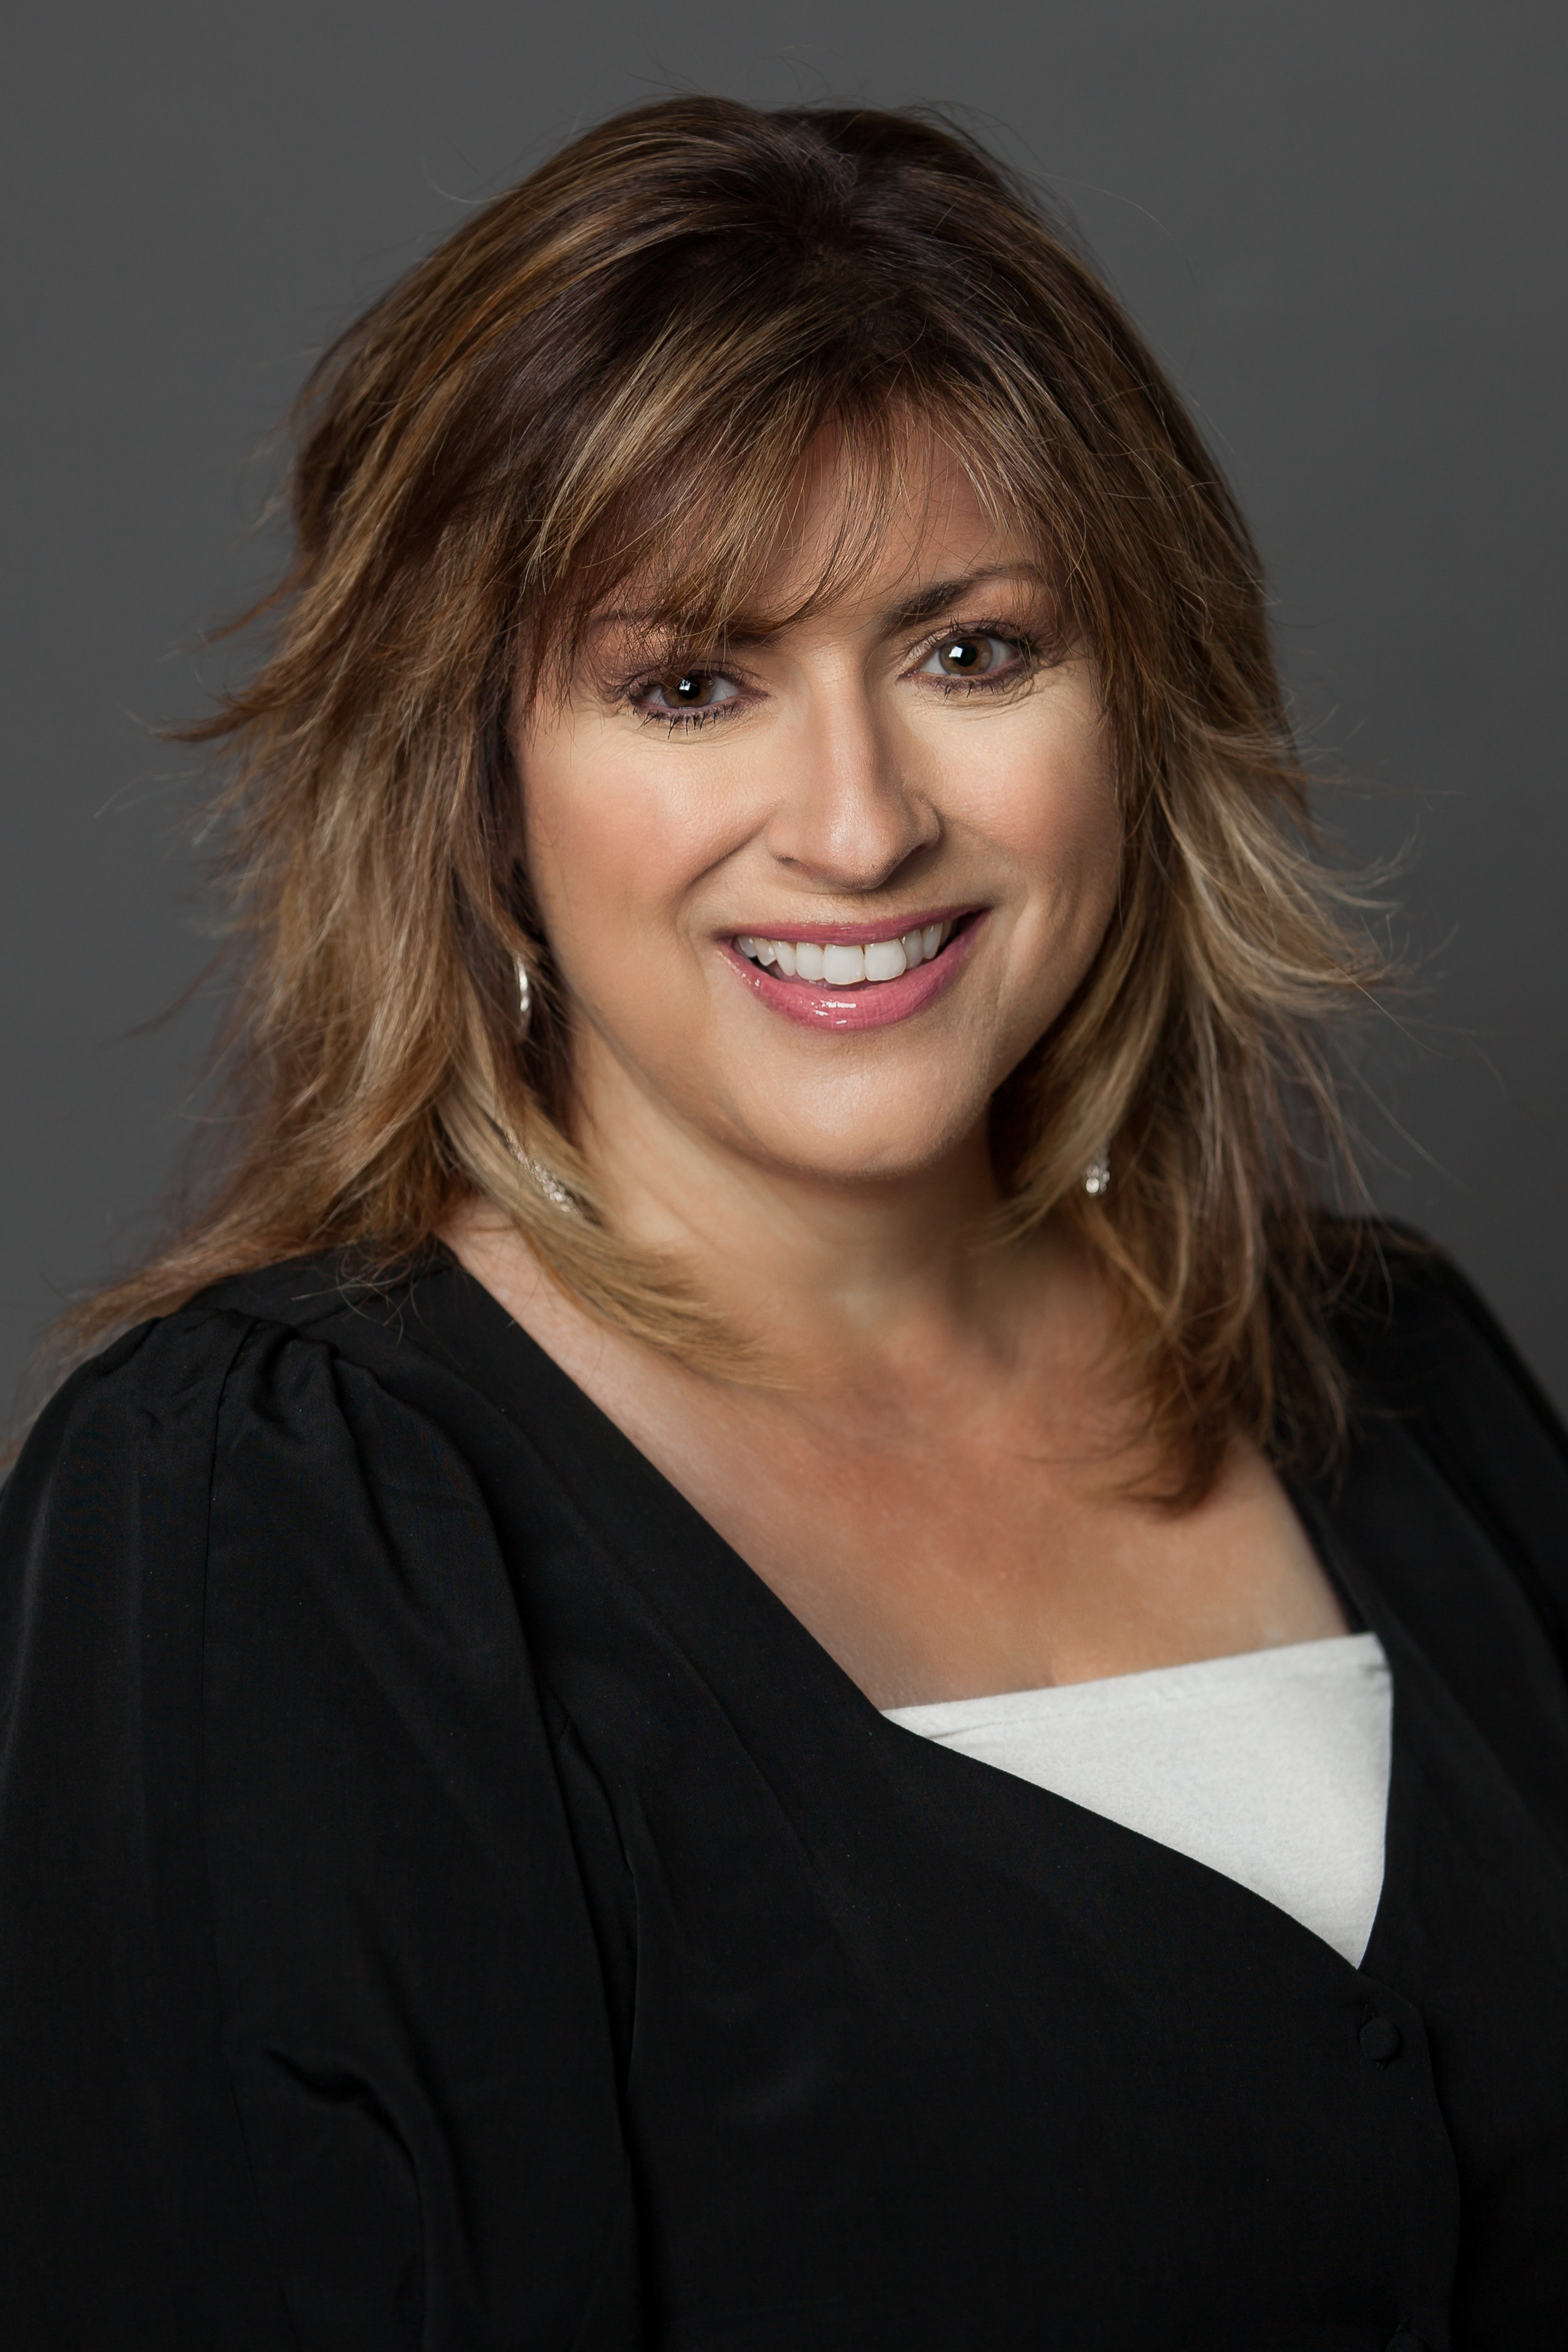 Lisa Sassone  Senior Foreclosure Prevention Counselor   585-546-3700 x 3023  lsassone@pathstone.org